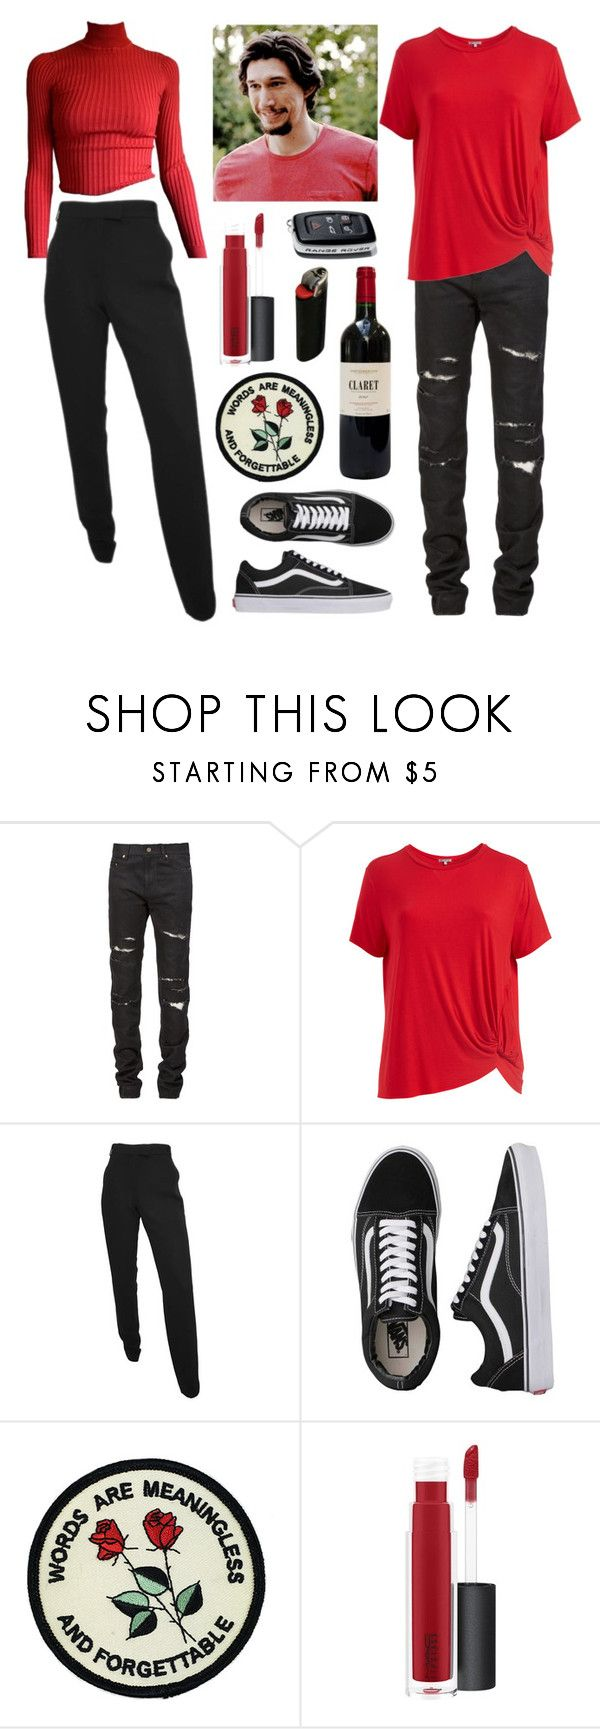 """""""Phillip Altman"""" by kayascodellc ❤ liked on Polyvore featuring Yves Saint Laurent, ADAM, Abito, Ann Demeulemeester, Vans, John Lewis and plus size clothing"""